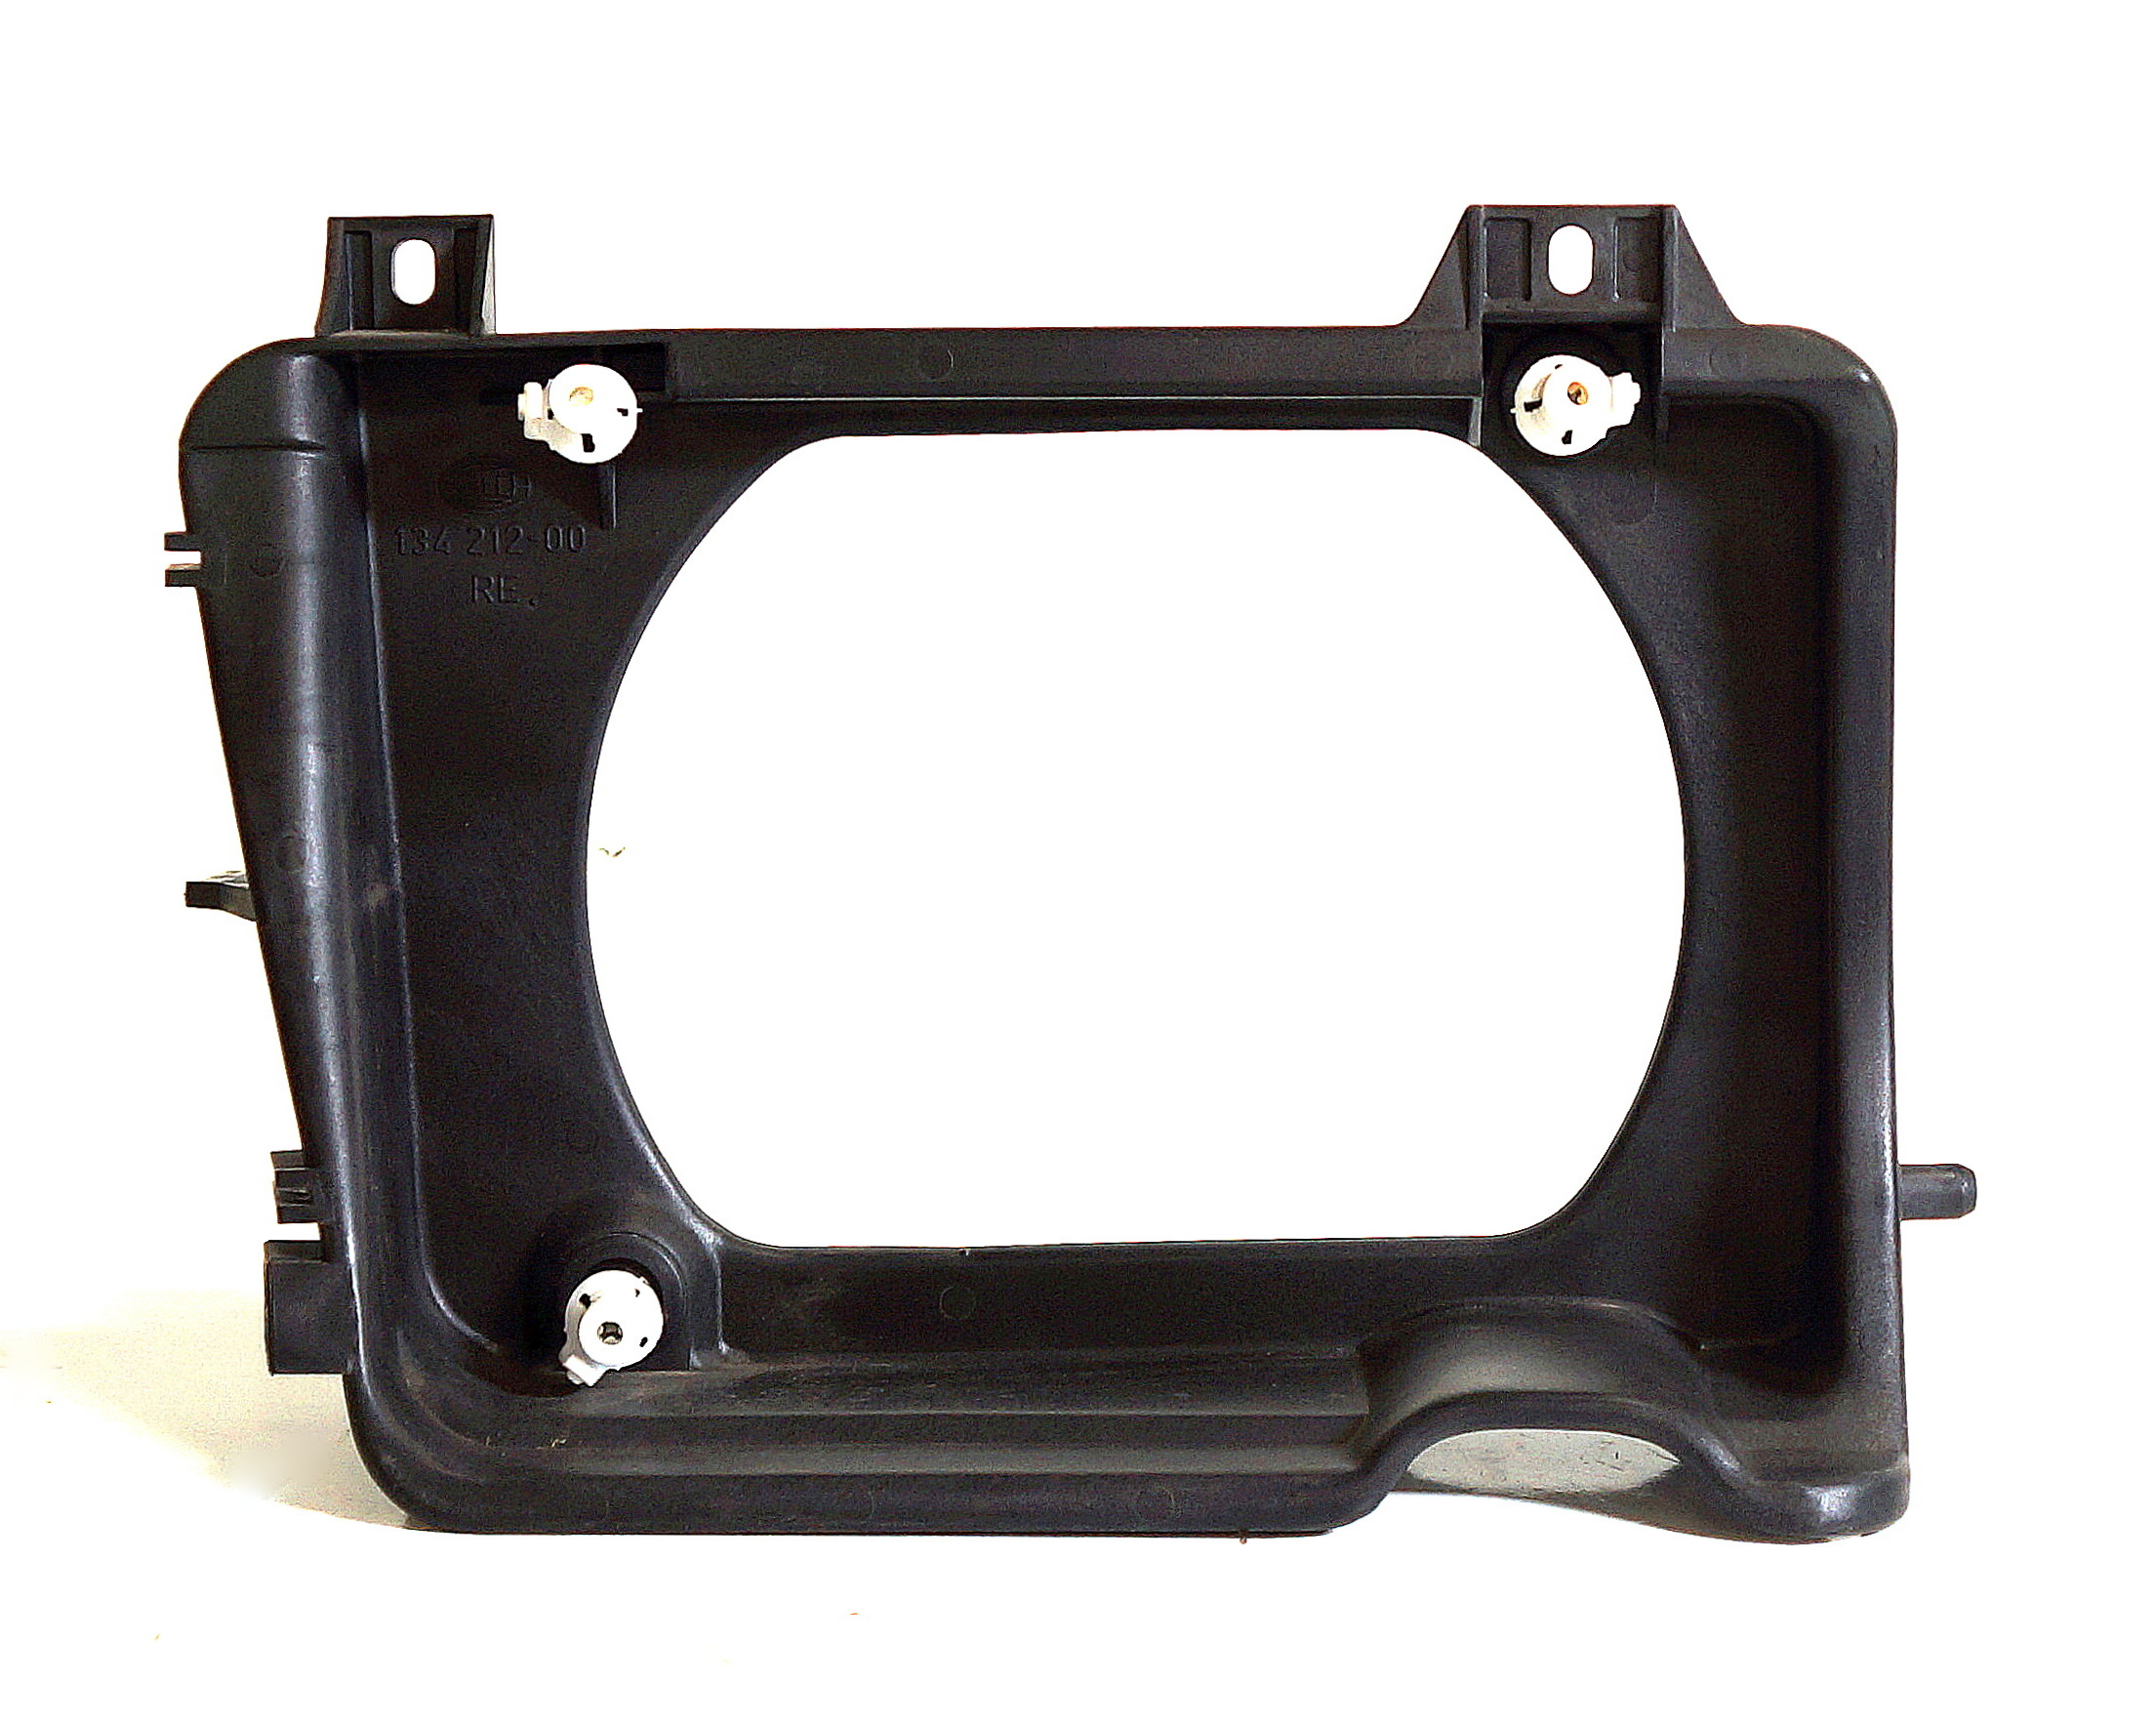 Attaching Frame